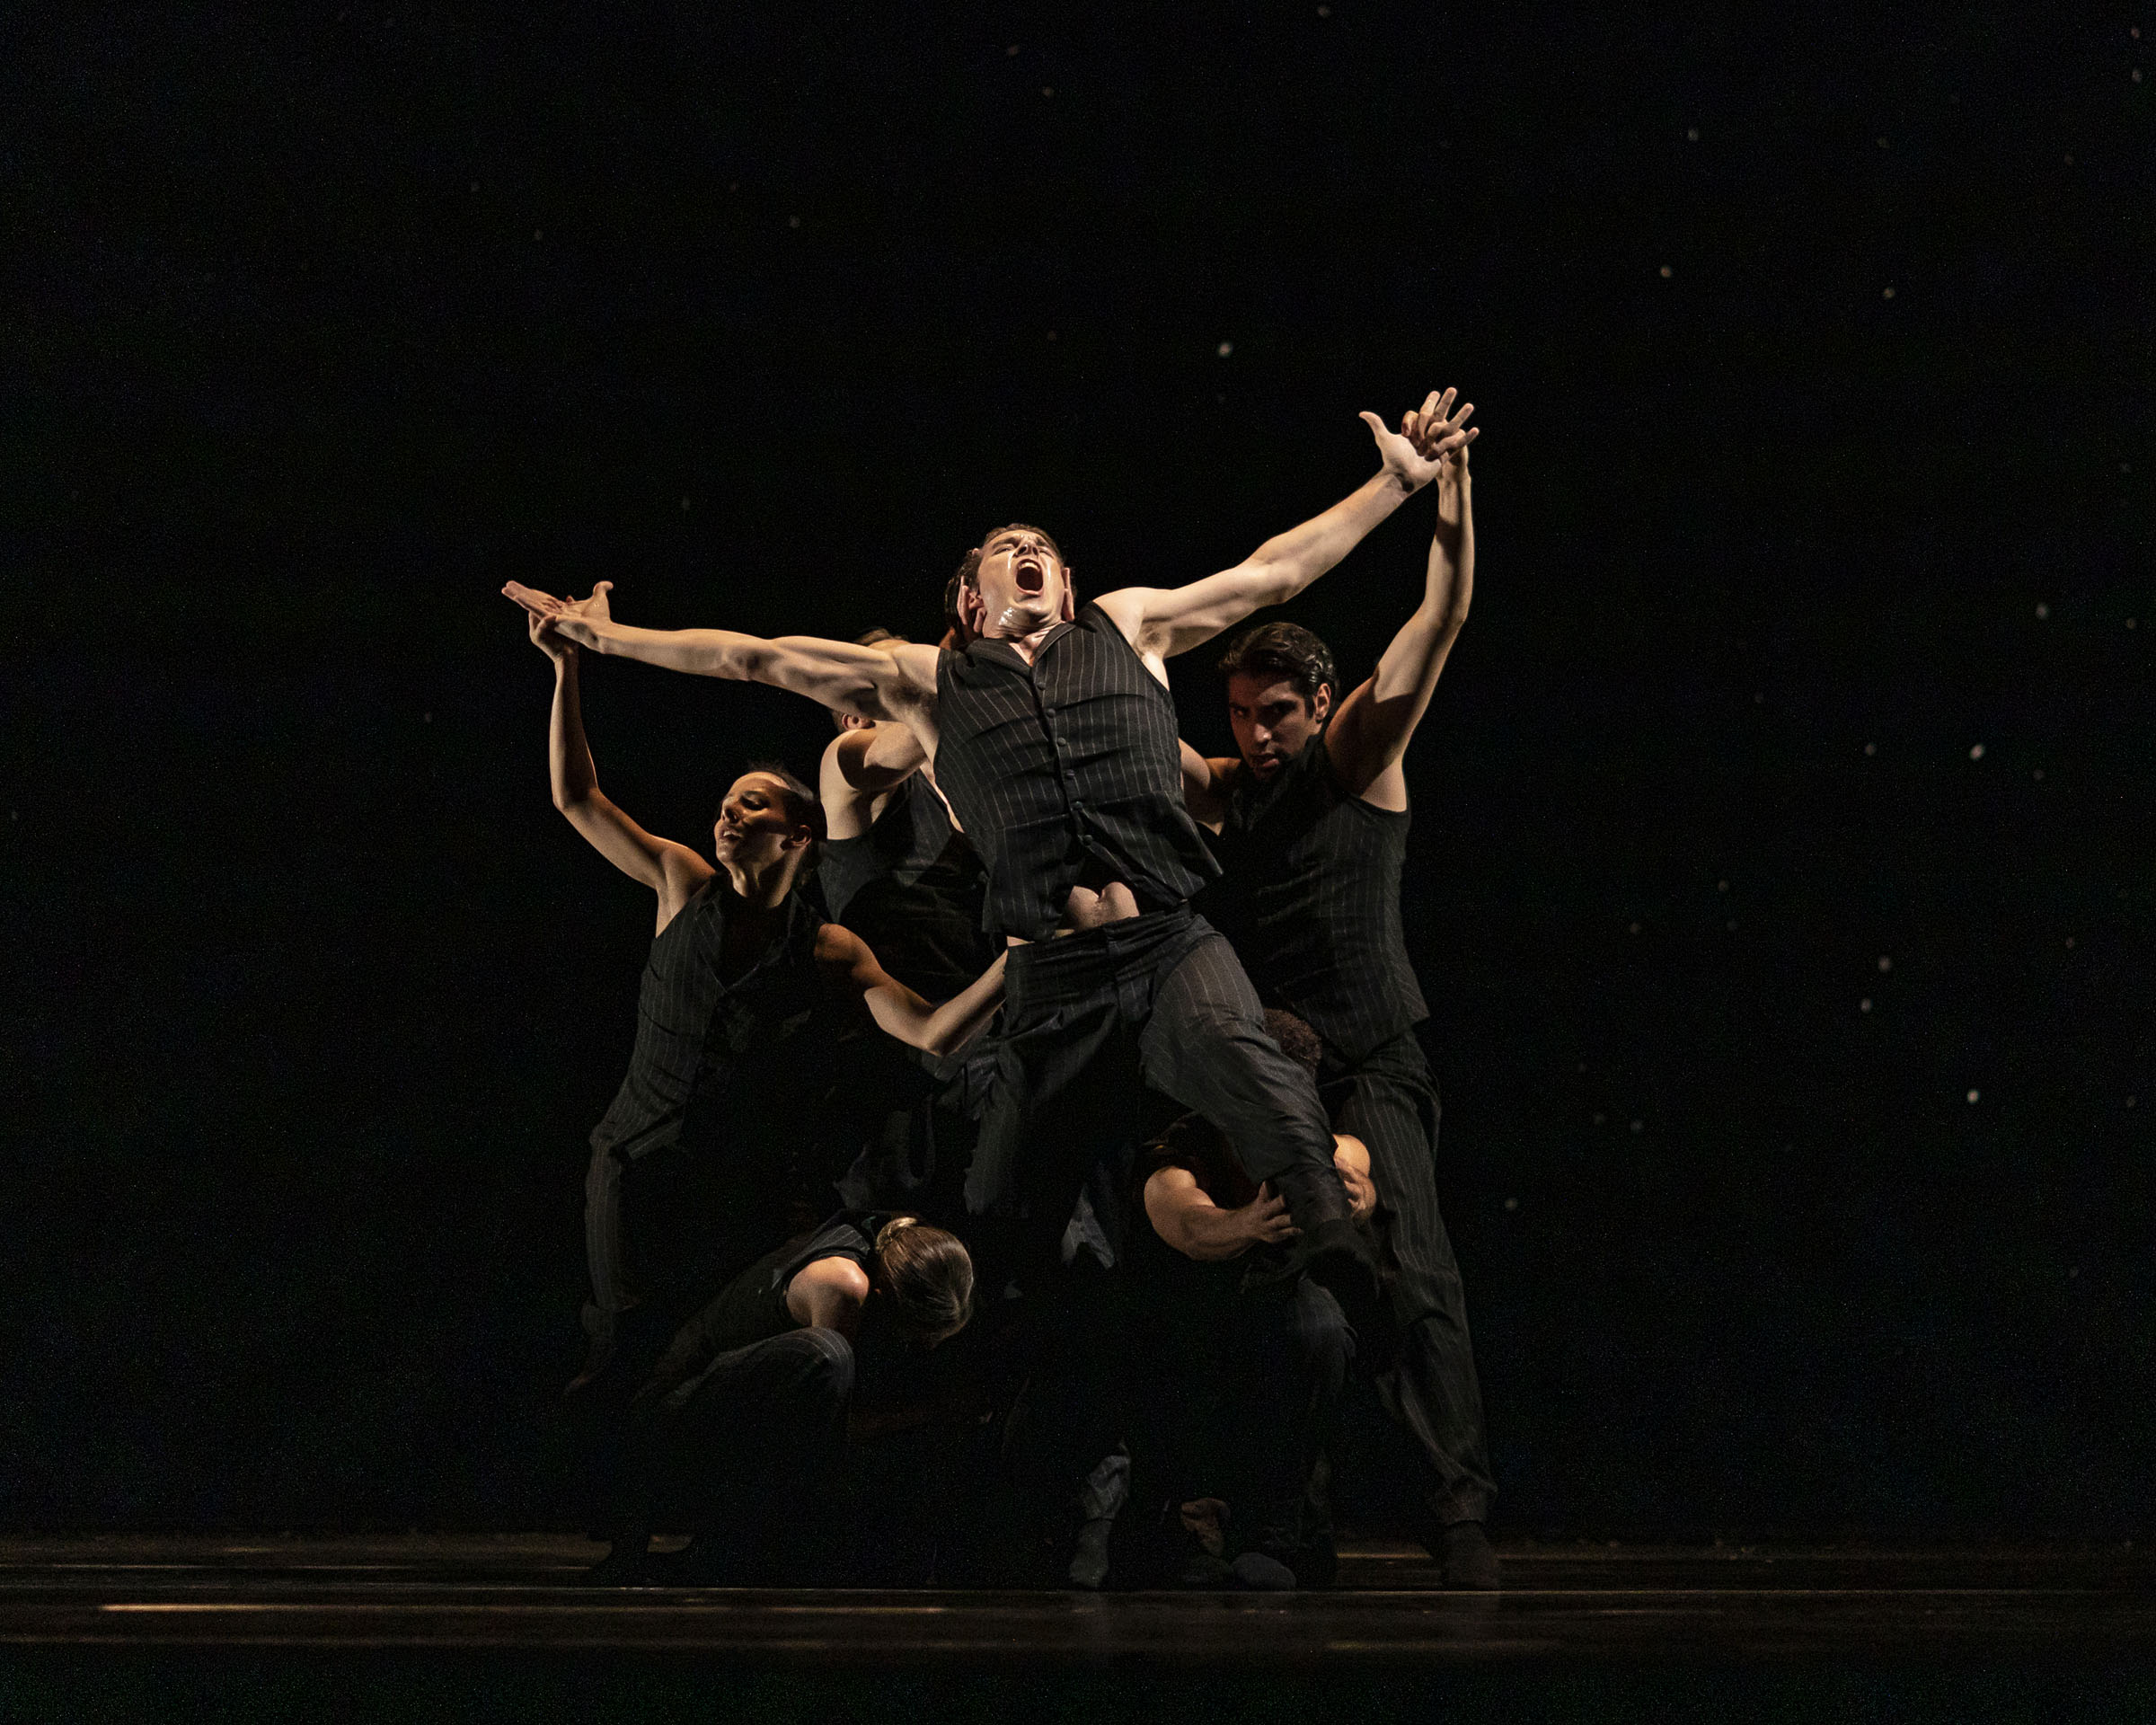 Solo Echo - choreographed by Crystal Pite